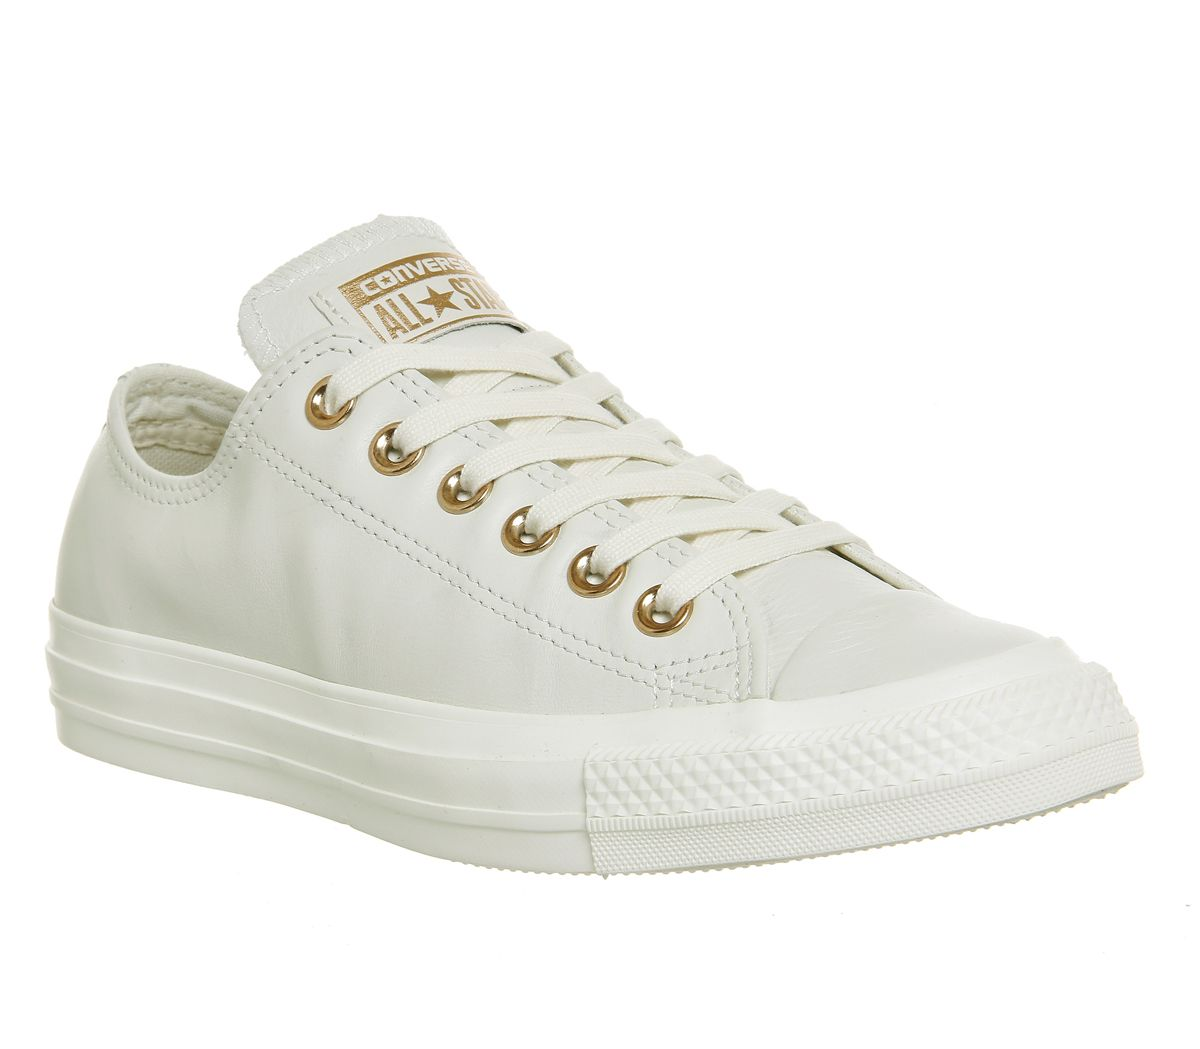 afd2e0cfeb Converse All Star Low Leather Egret Rose Gold Exclusive - Hers trainers